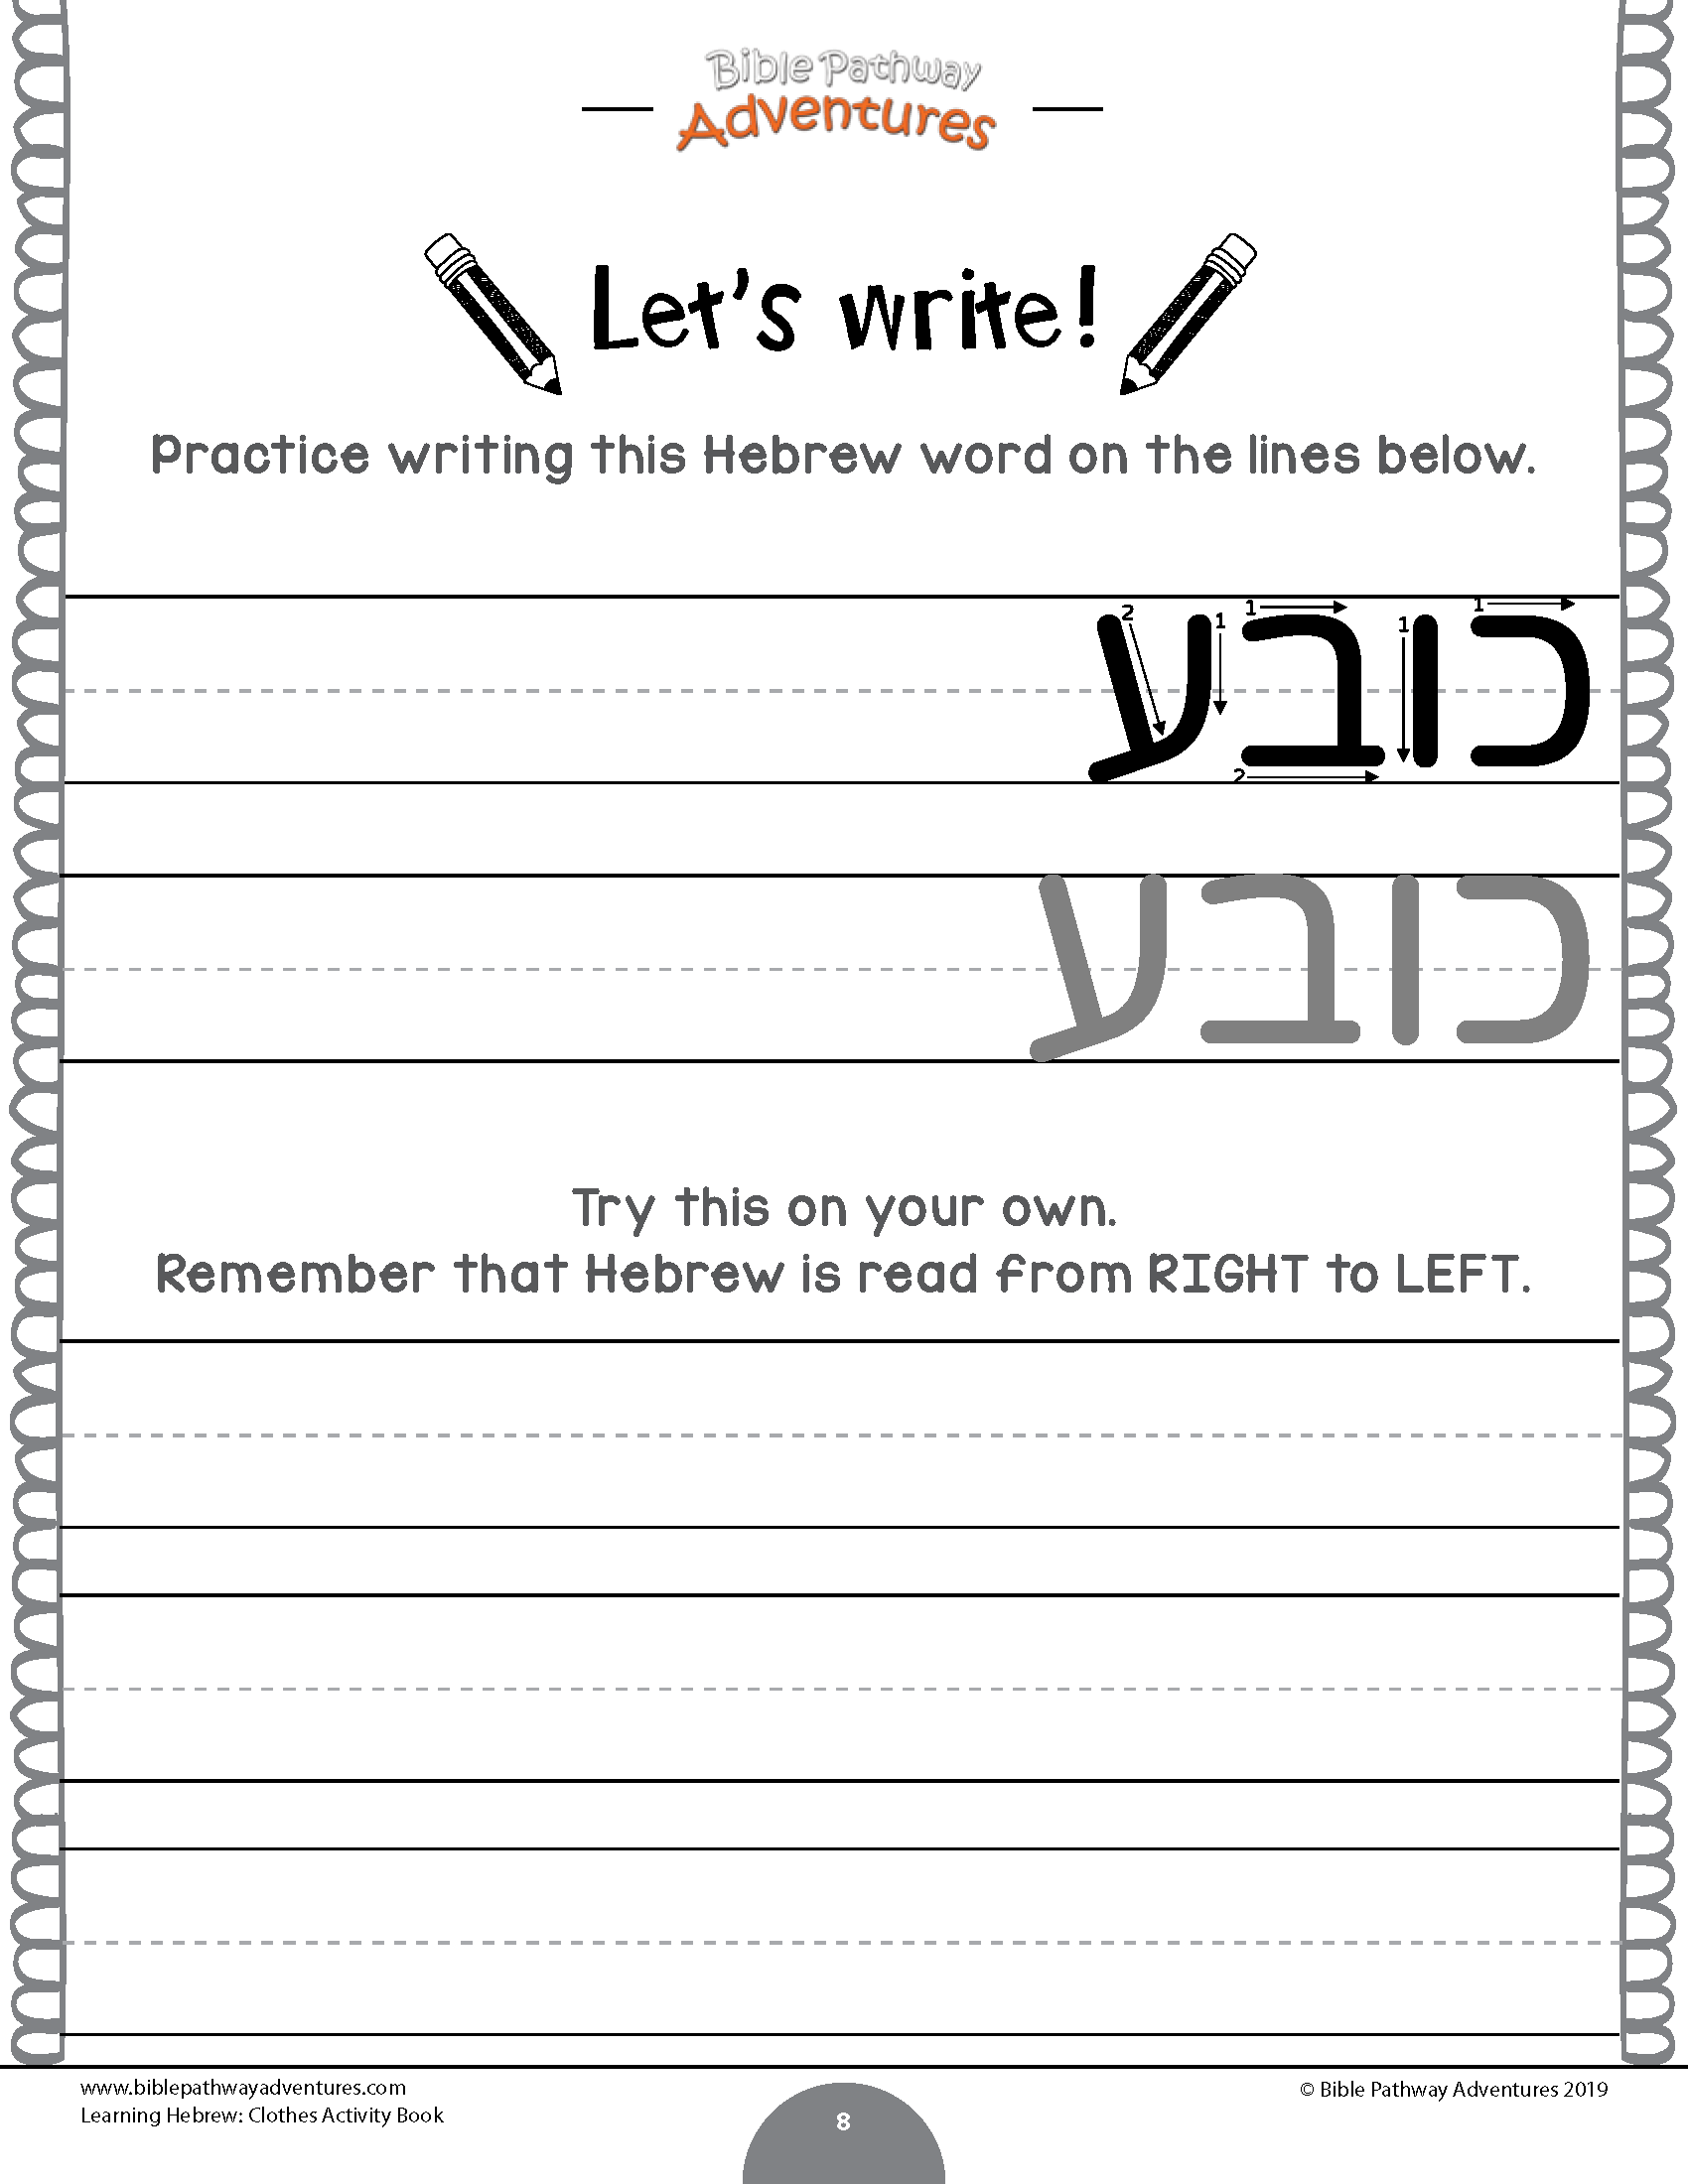 Learning Hebrew Activity Book Clothes Bible Pathway